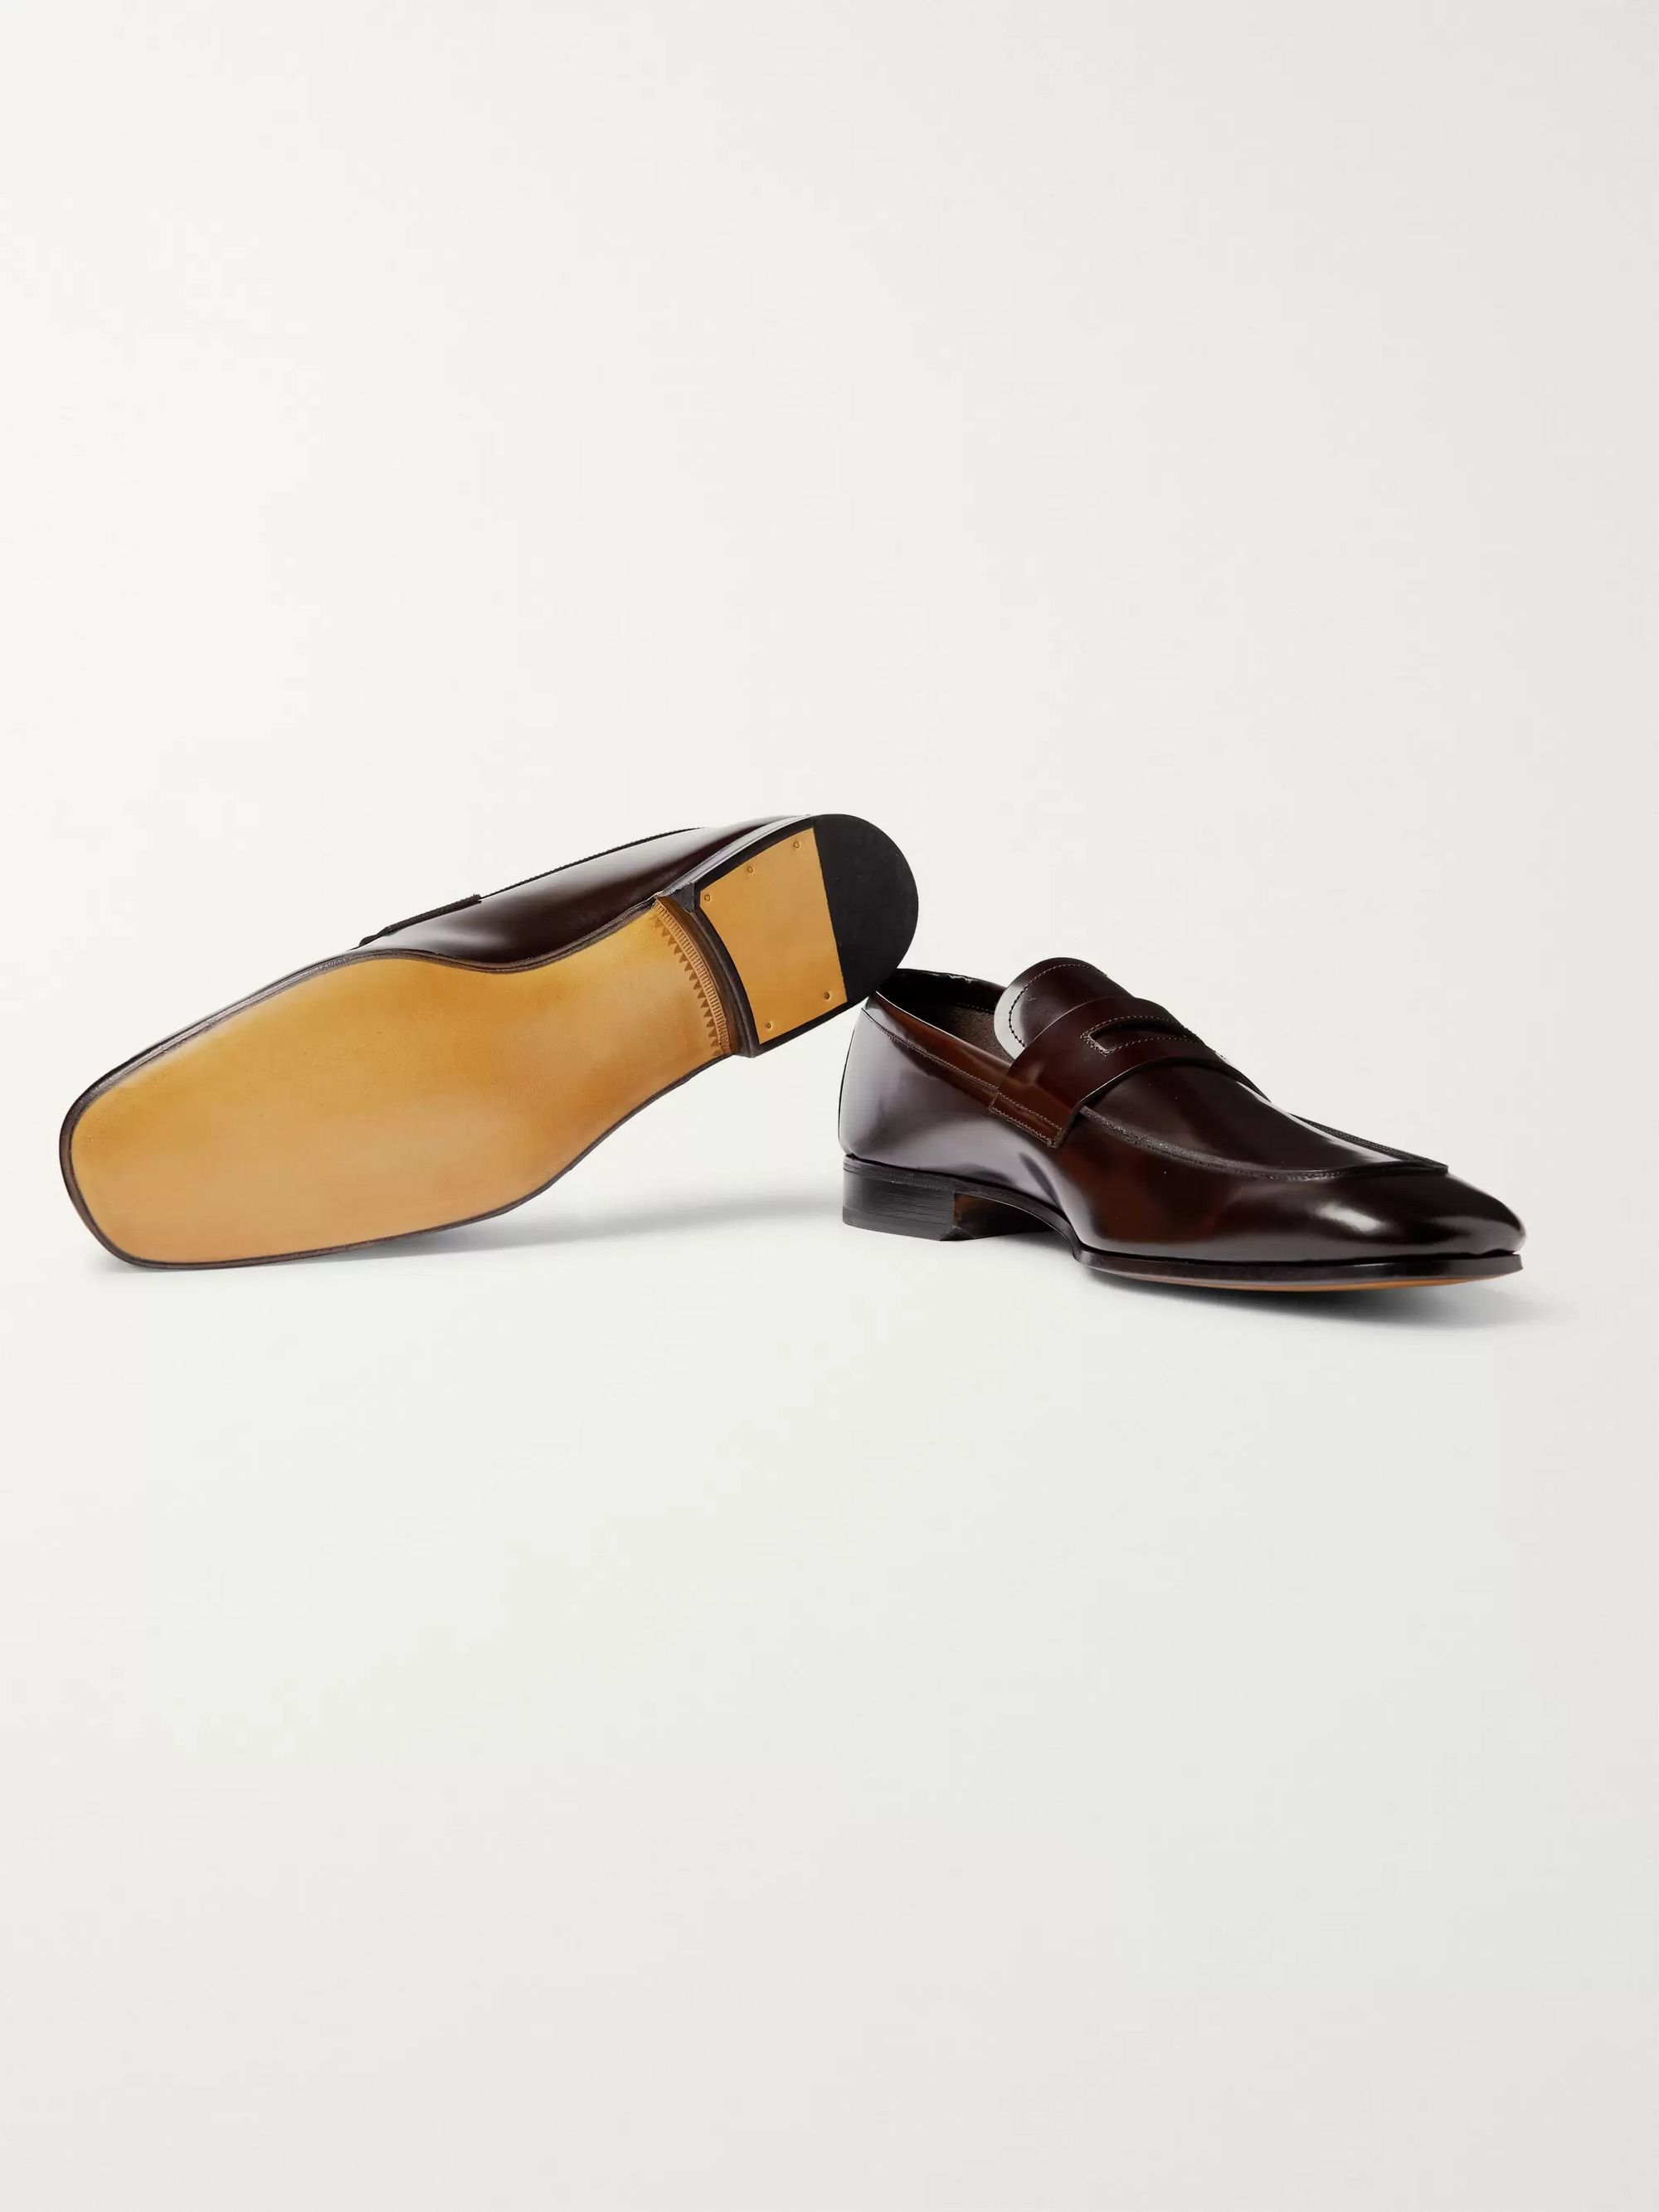 TOM FORD Midland Spazzolato Leather Penny Loafers